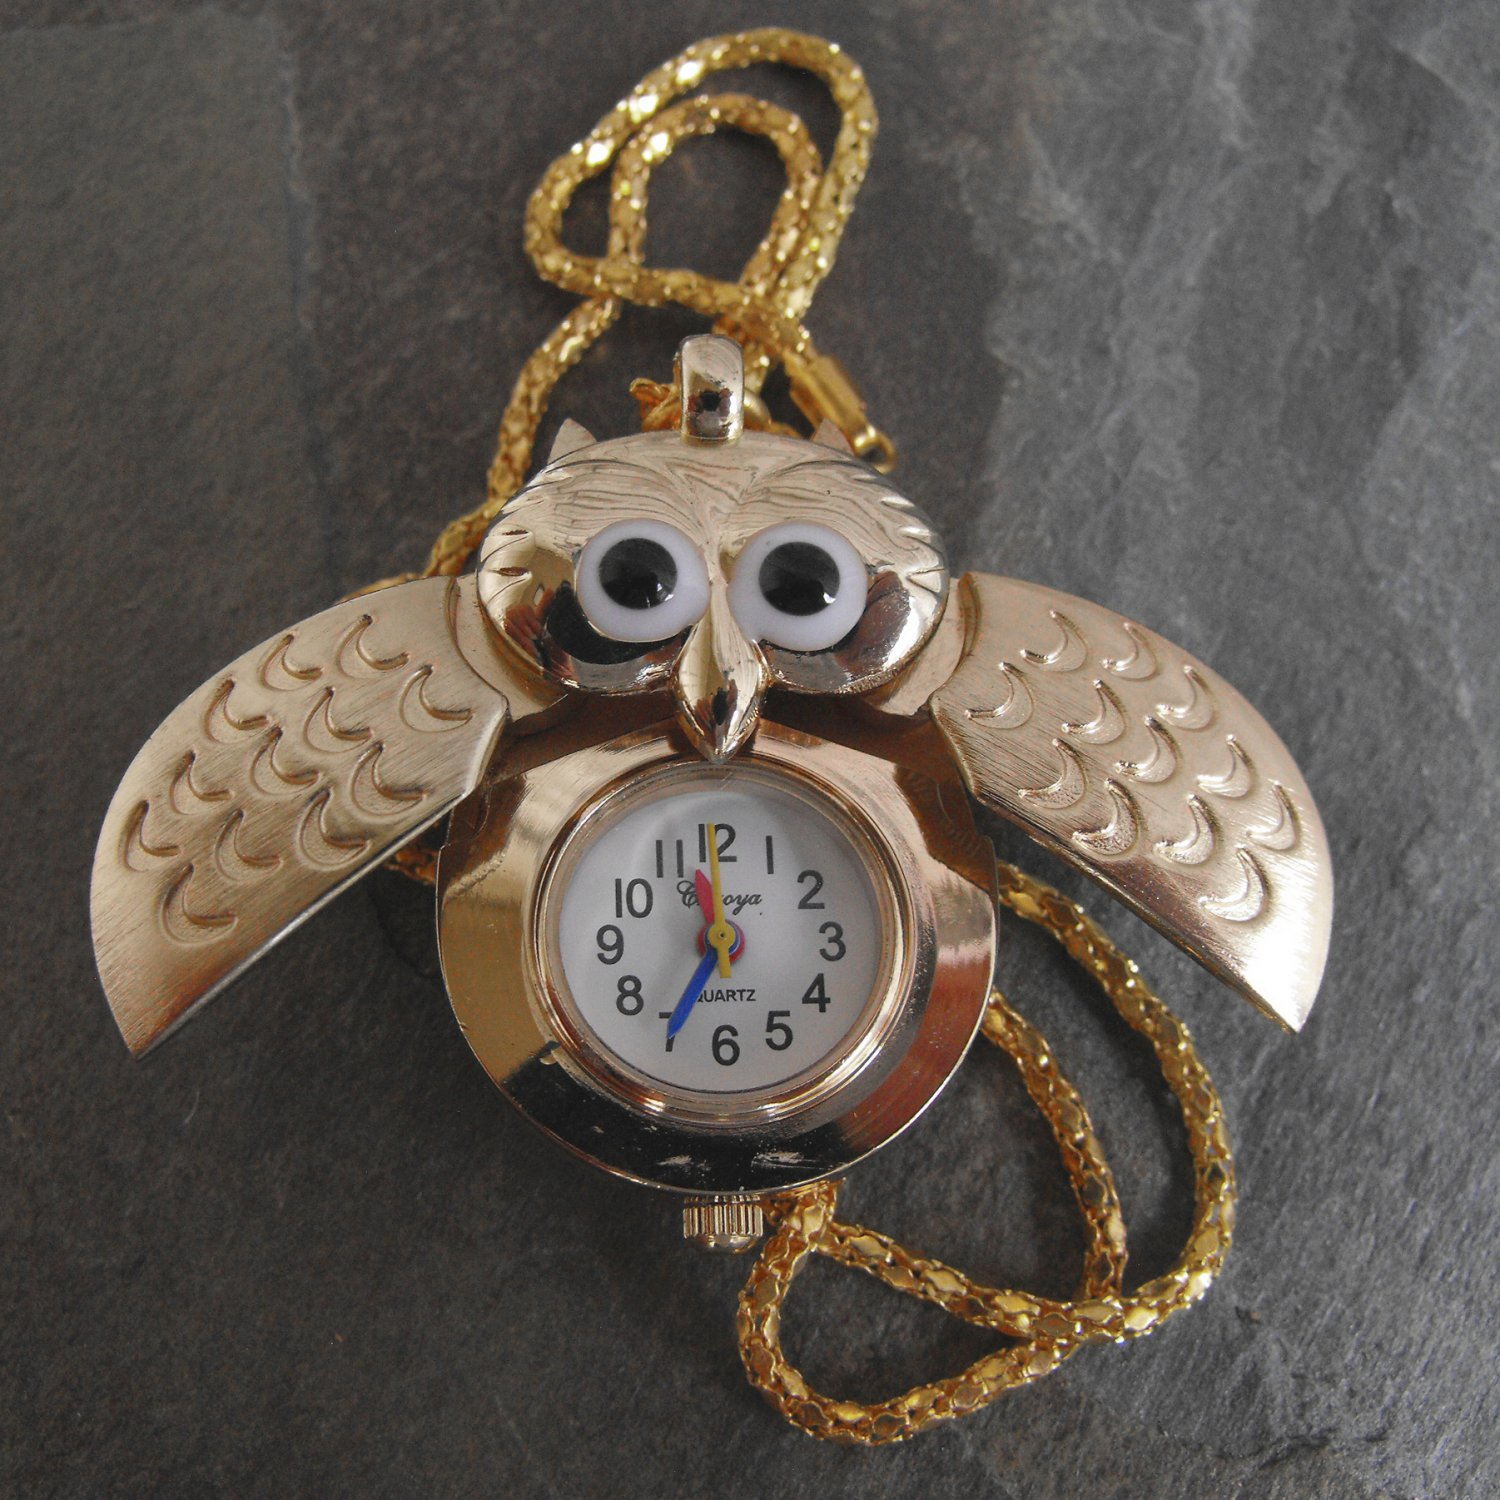 Gold Color Cuckoo Timepiece With Chain